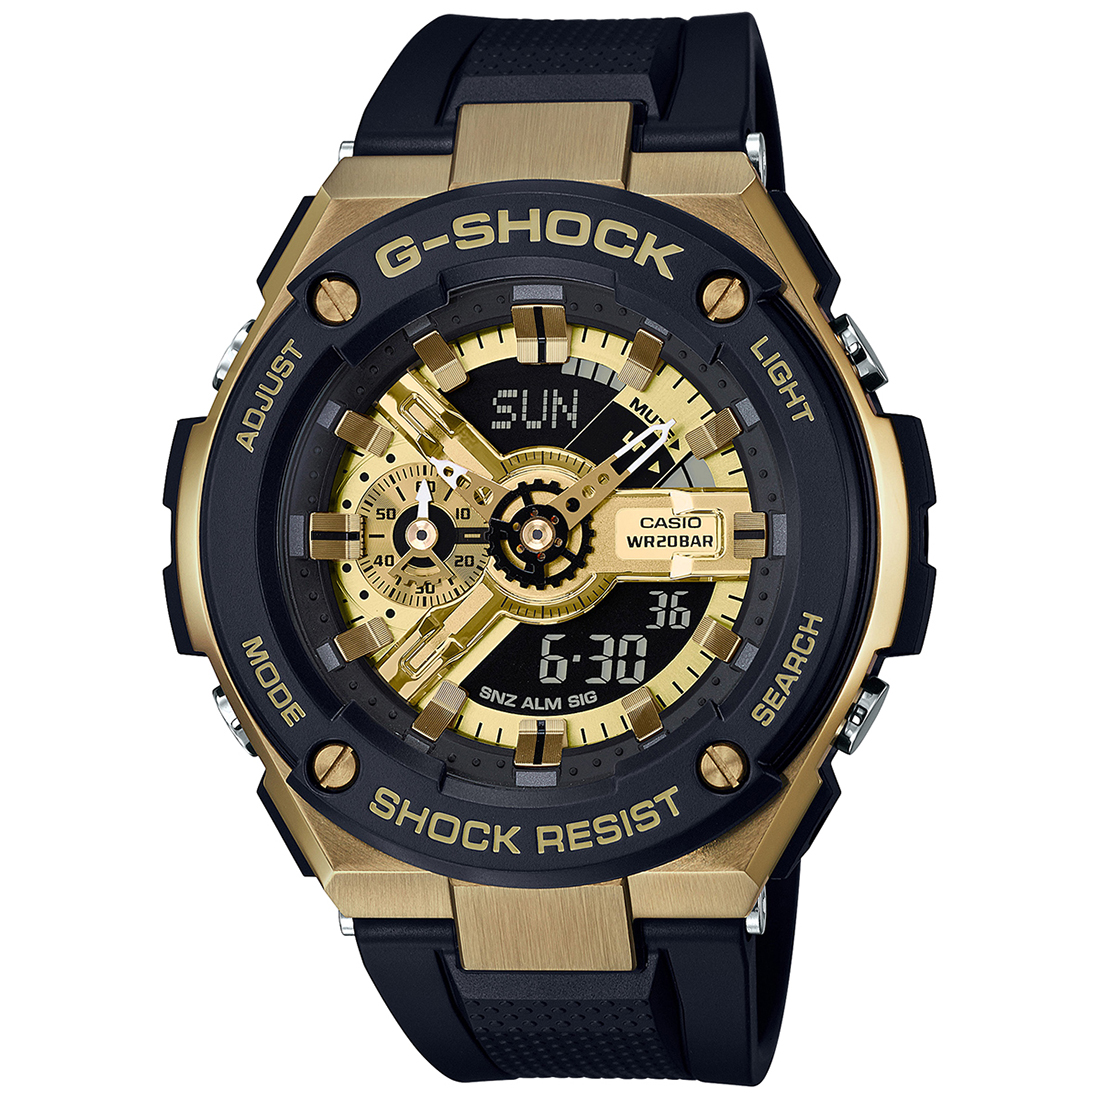 g826 gst-400g-1a9dr g-shock watch-G826